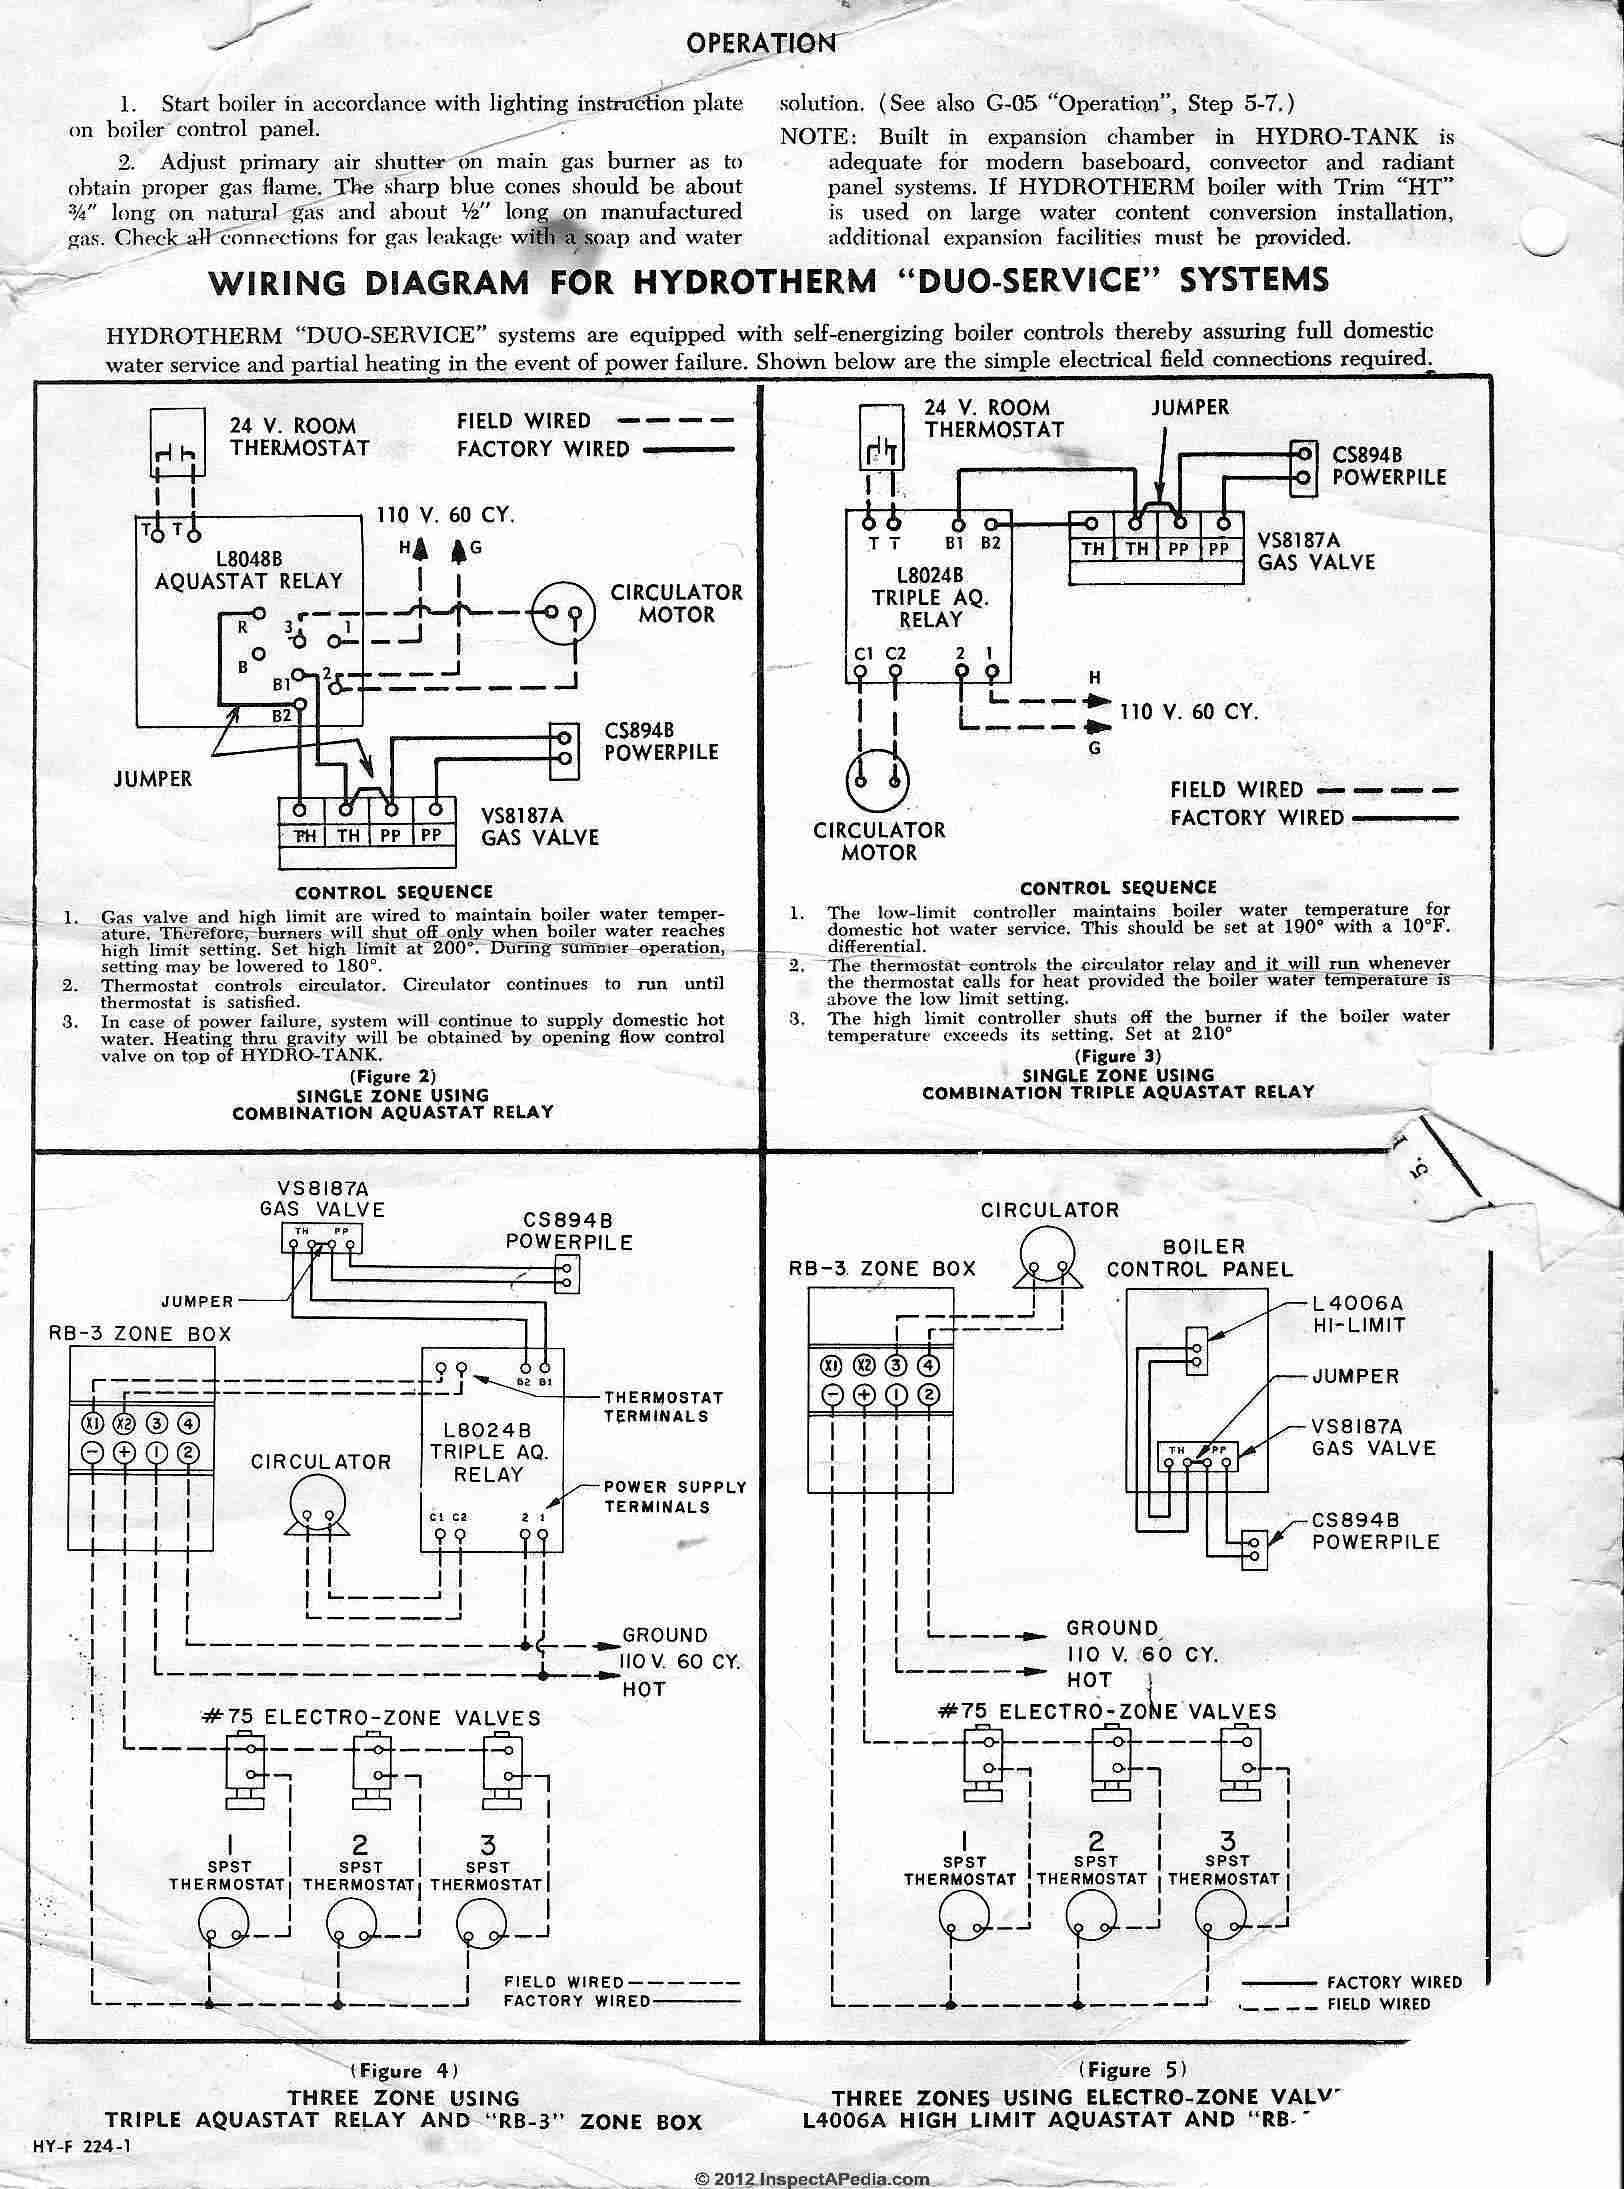 L8024B_Aquastat_0422_DJFcs heating boiler aquastat control diagnosis, troubleshooting, repair imit boiler thermostat wiring diagram at bayanpartner.co